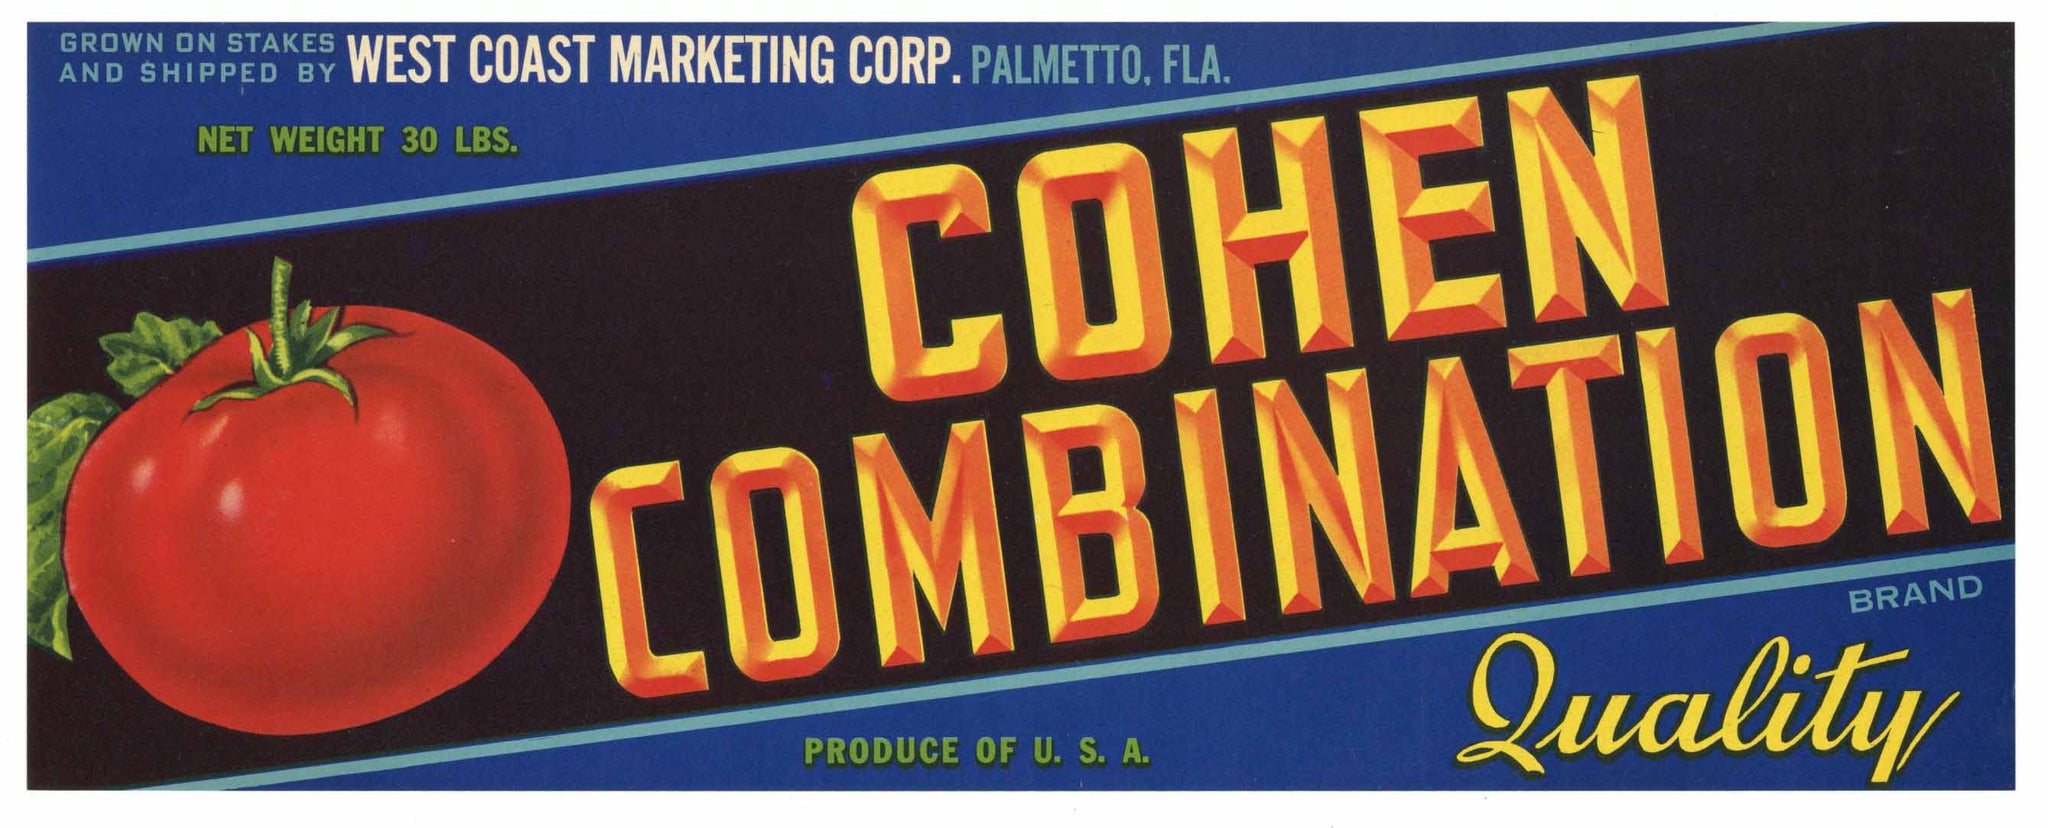 Cohen Combination Brand Vintage Palmetto Florida Produce Crate Label, Tomato